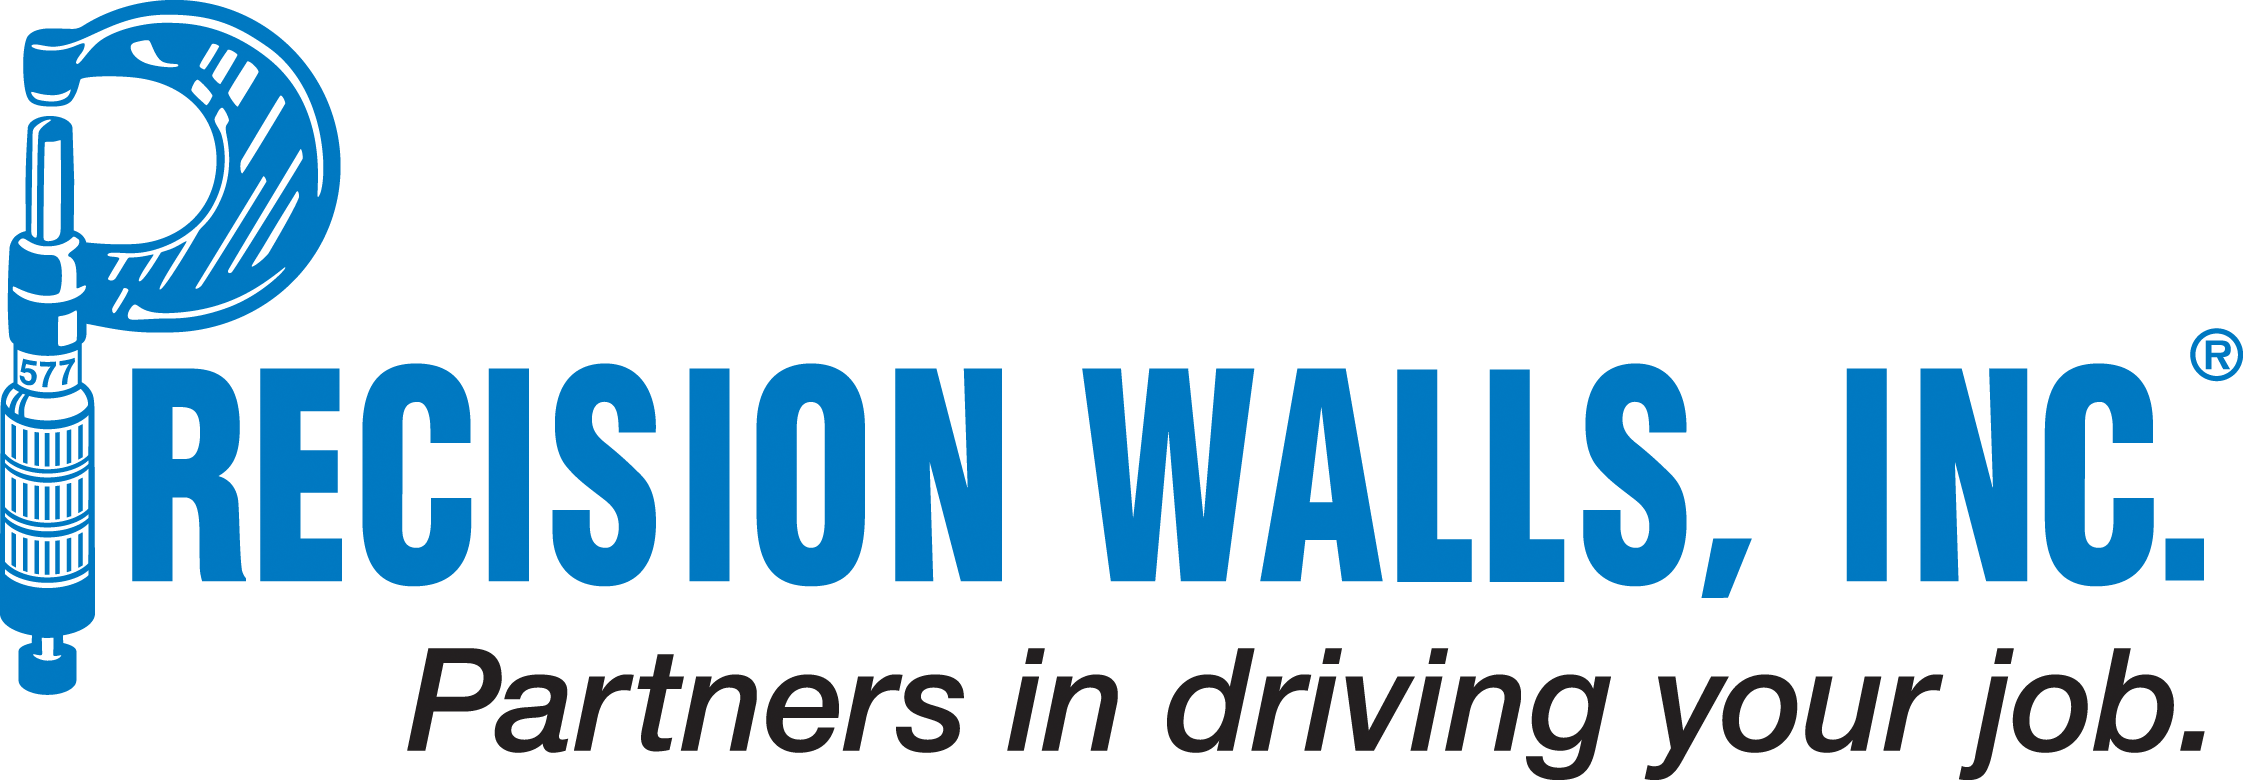 Precision Walls logo